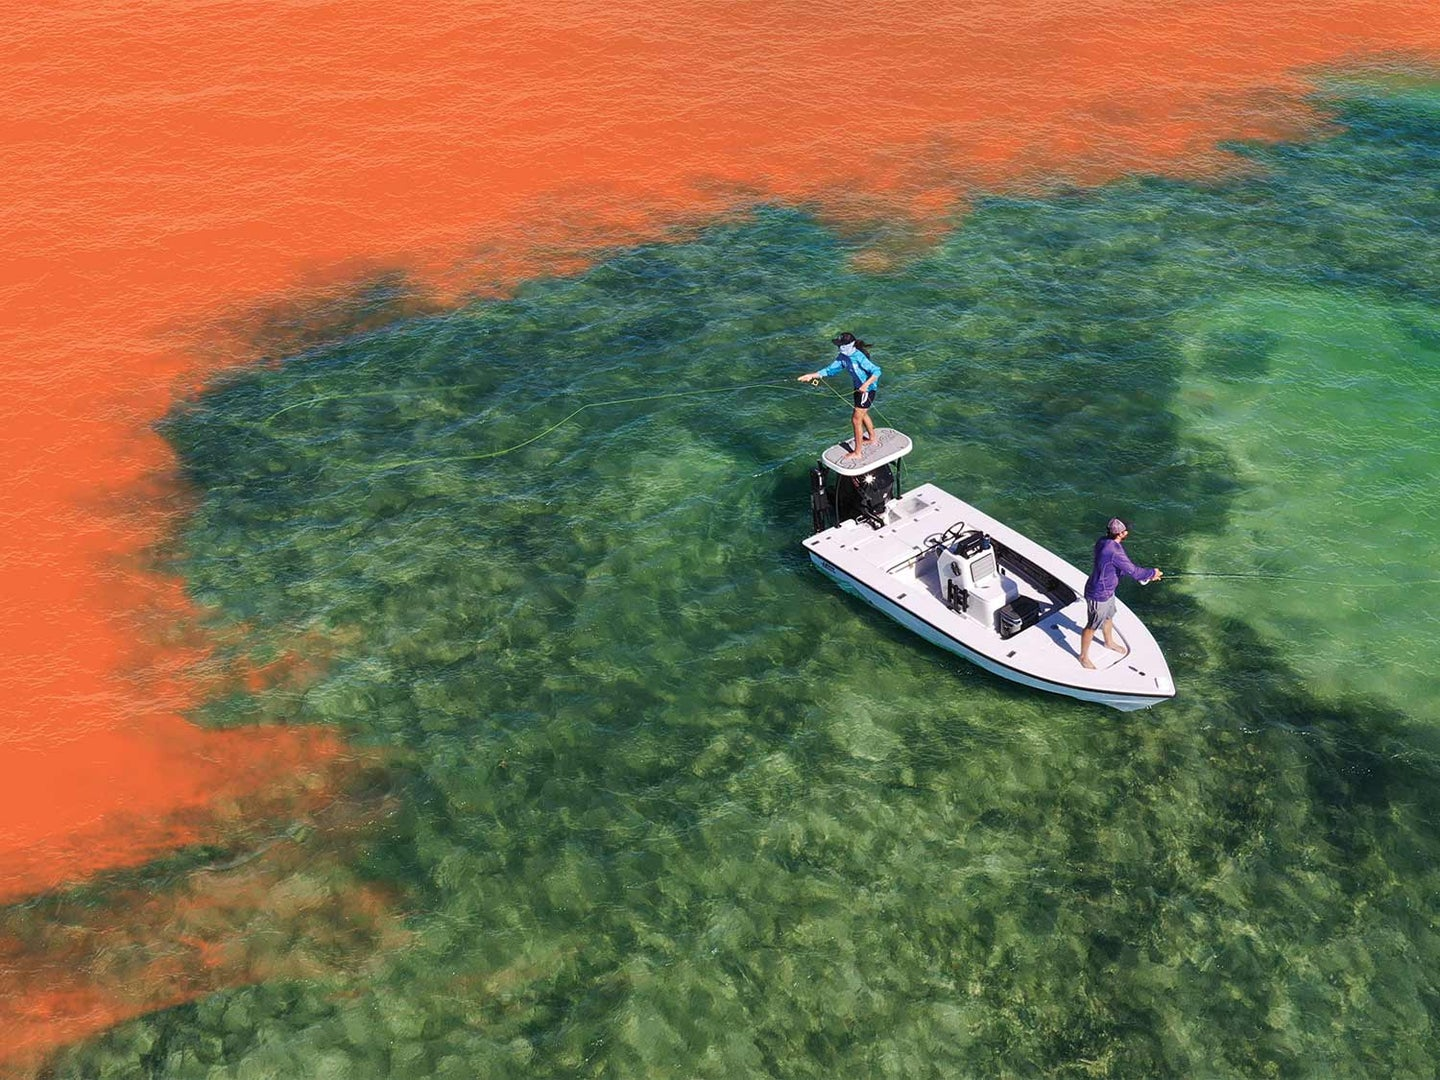 Aerial photo of two anglers fishing on a boat.